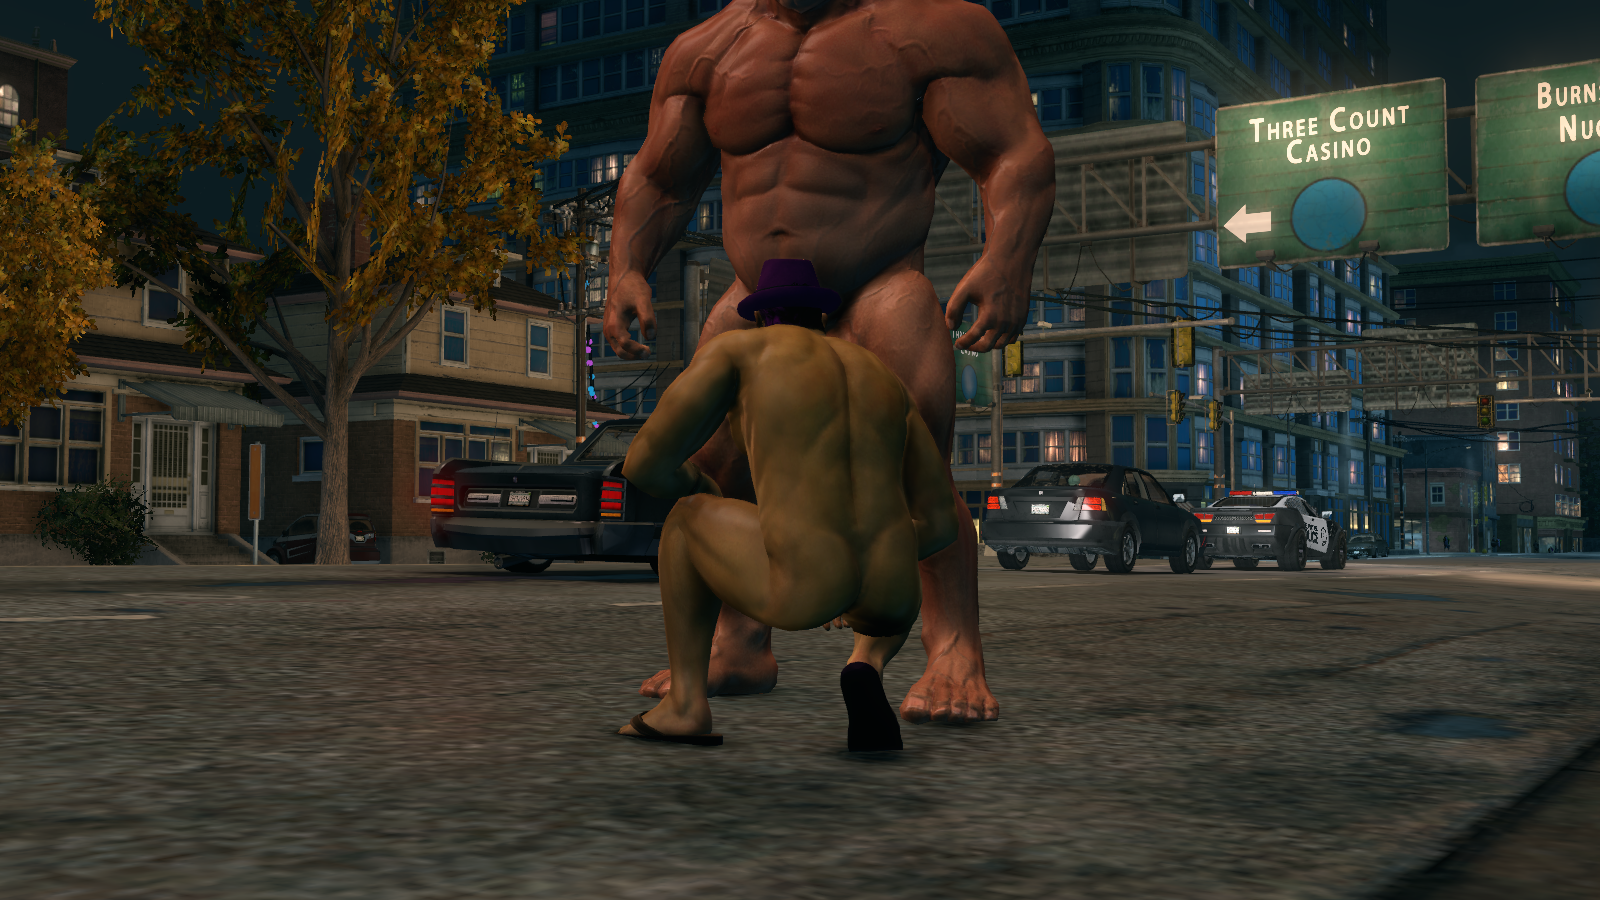 Saints row4 sex mod sex photo